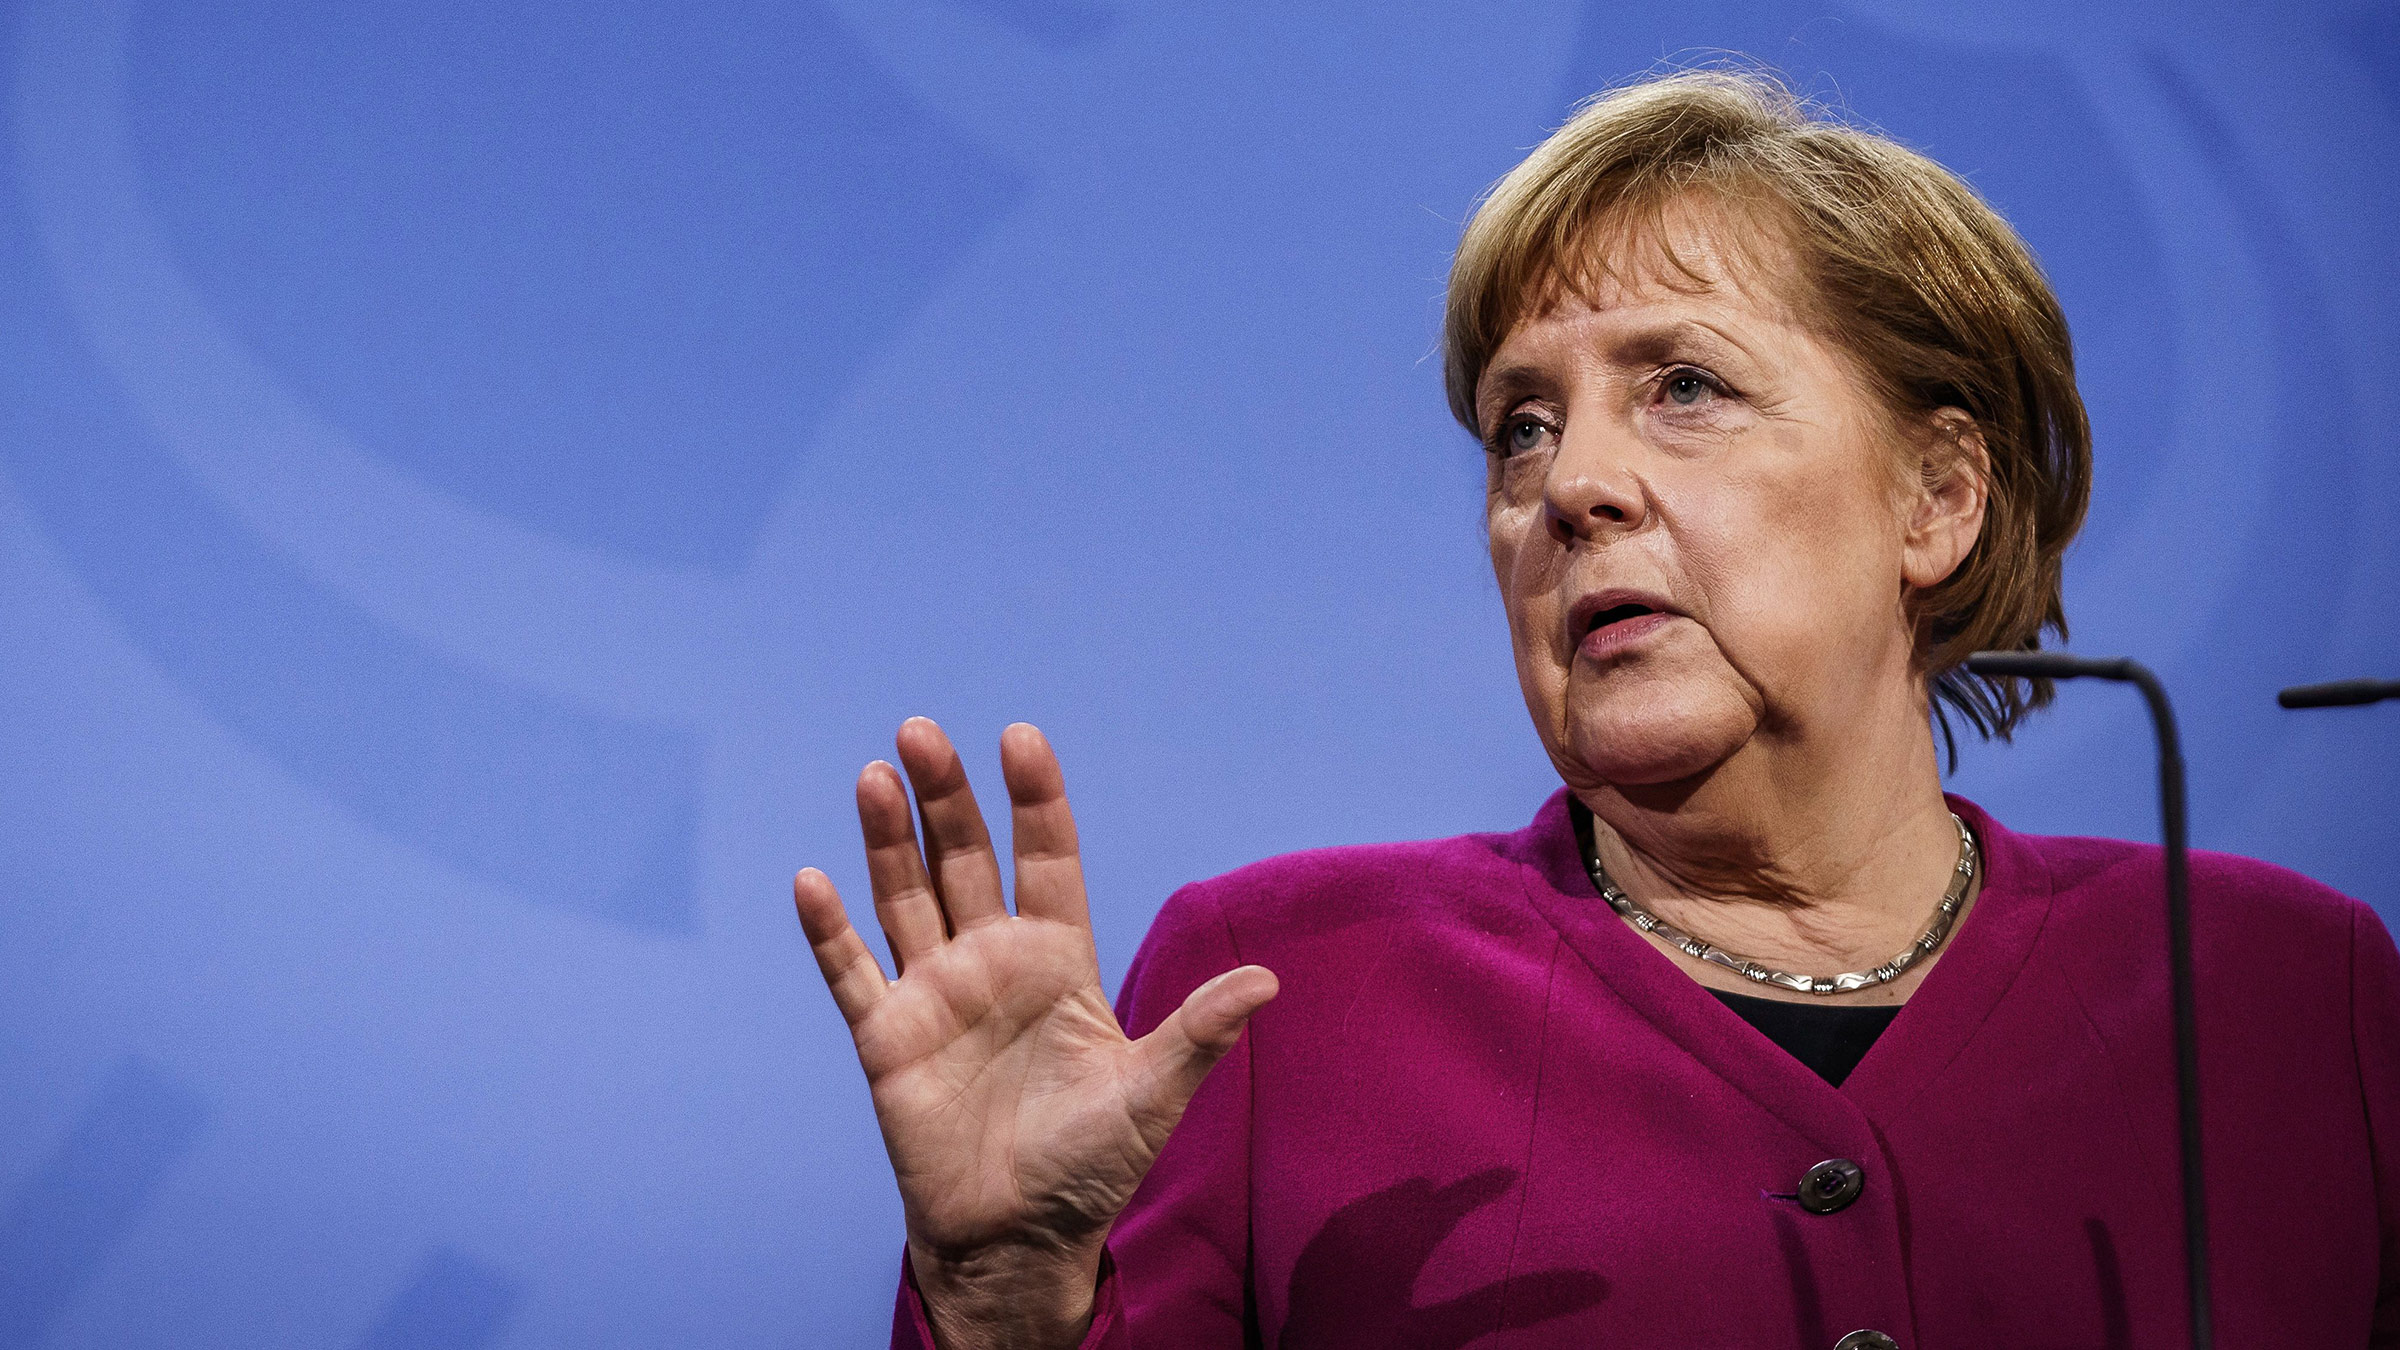 German leader Angela Merkel gives a press statement at the Chancellery in Berlin, on March 25.